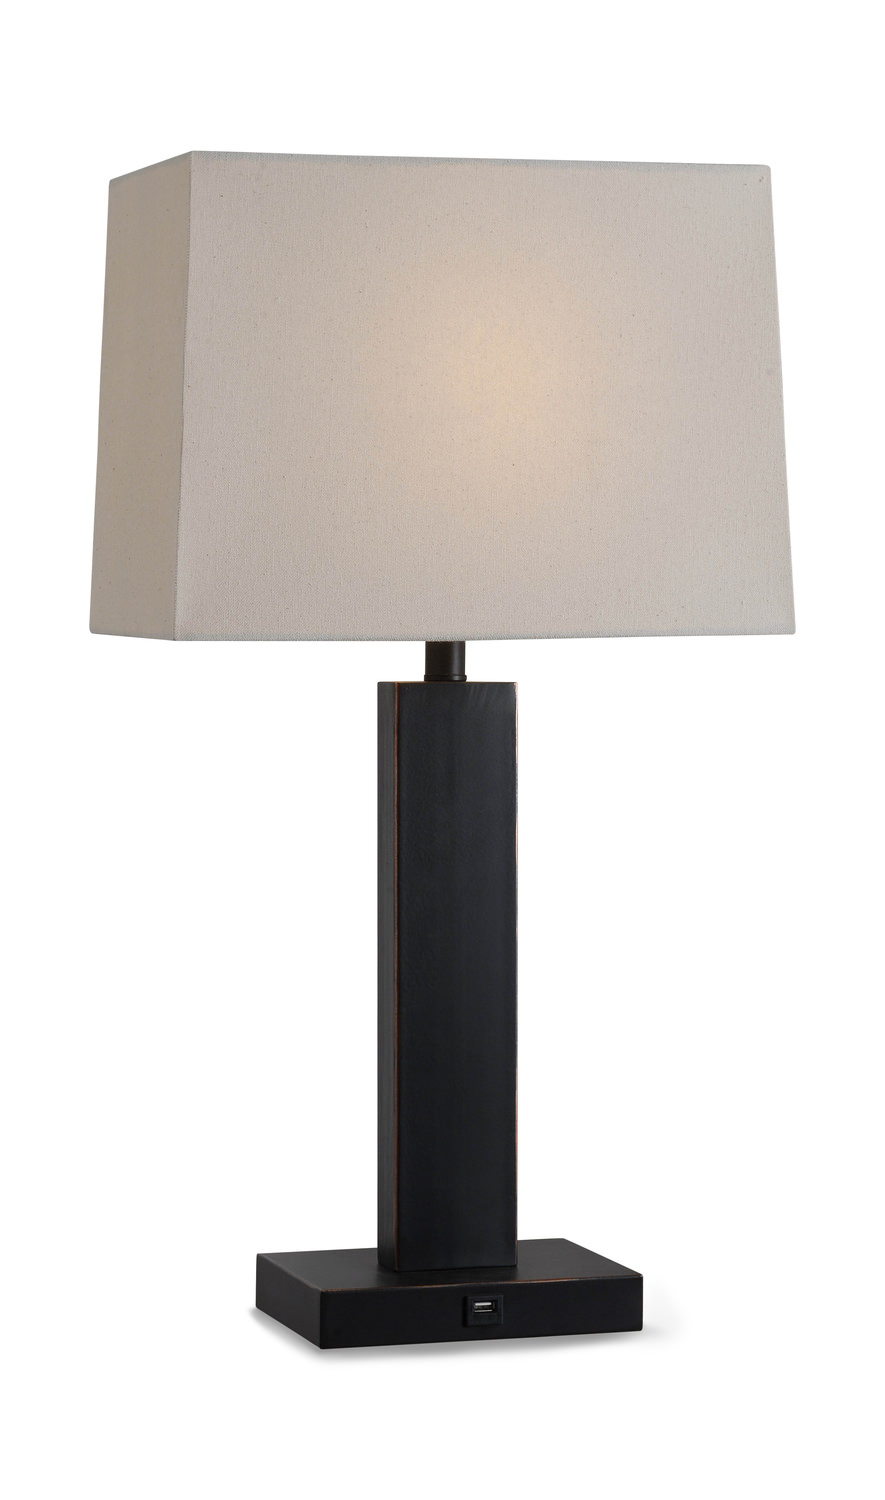 Innkeeper Table Lamp With Usb Port Hom Furniture